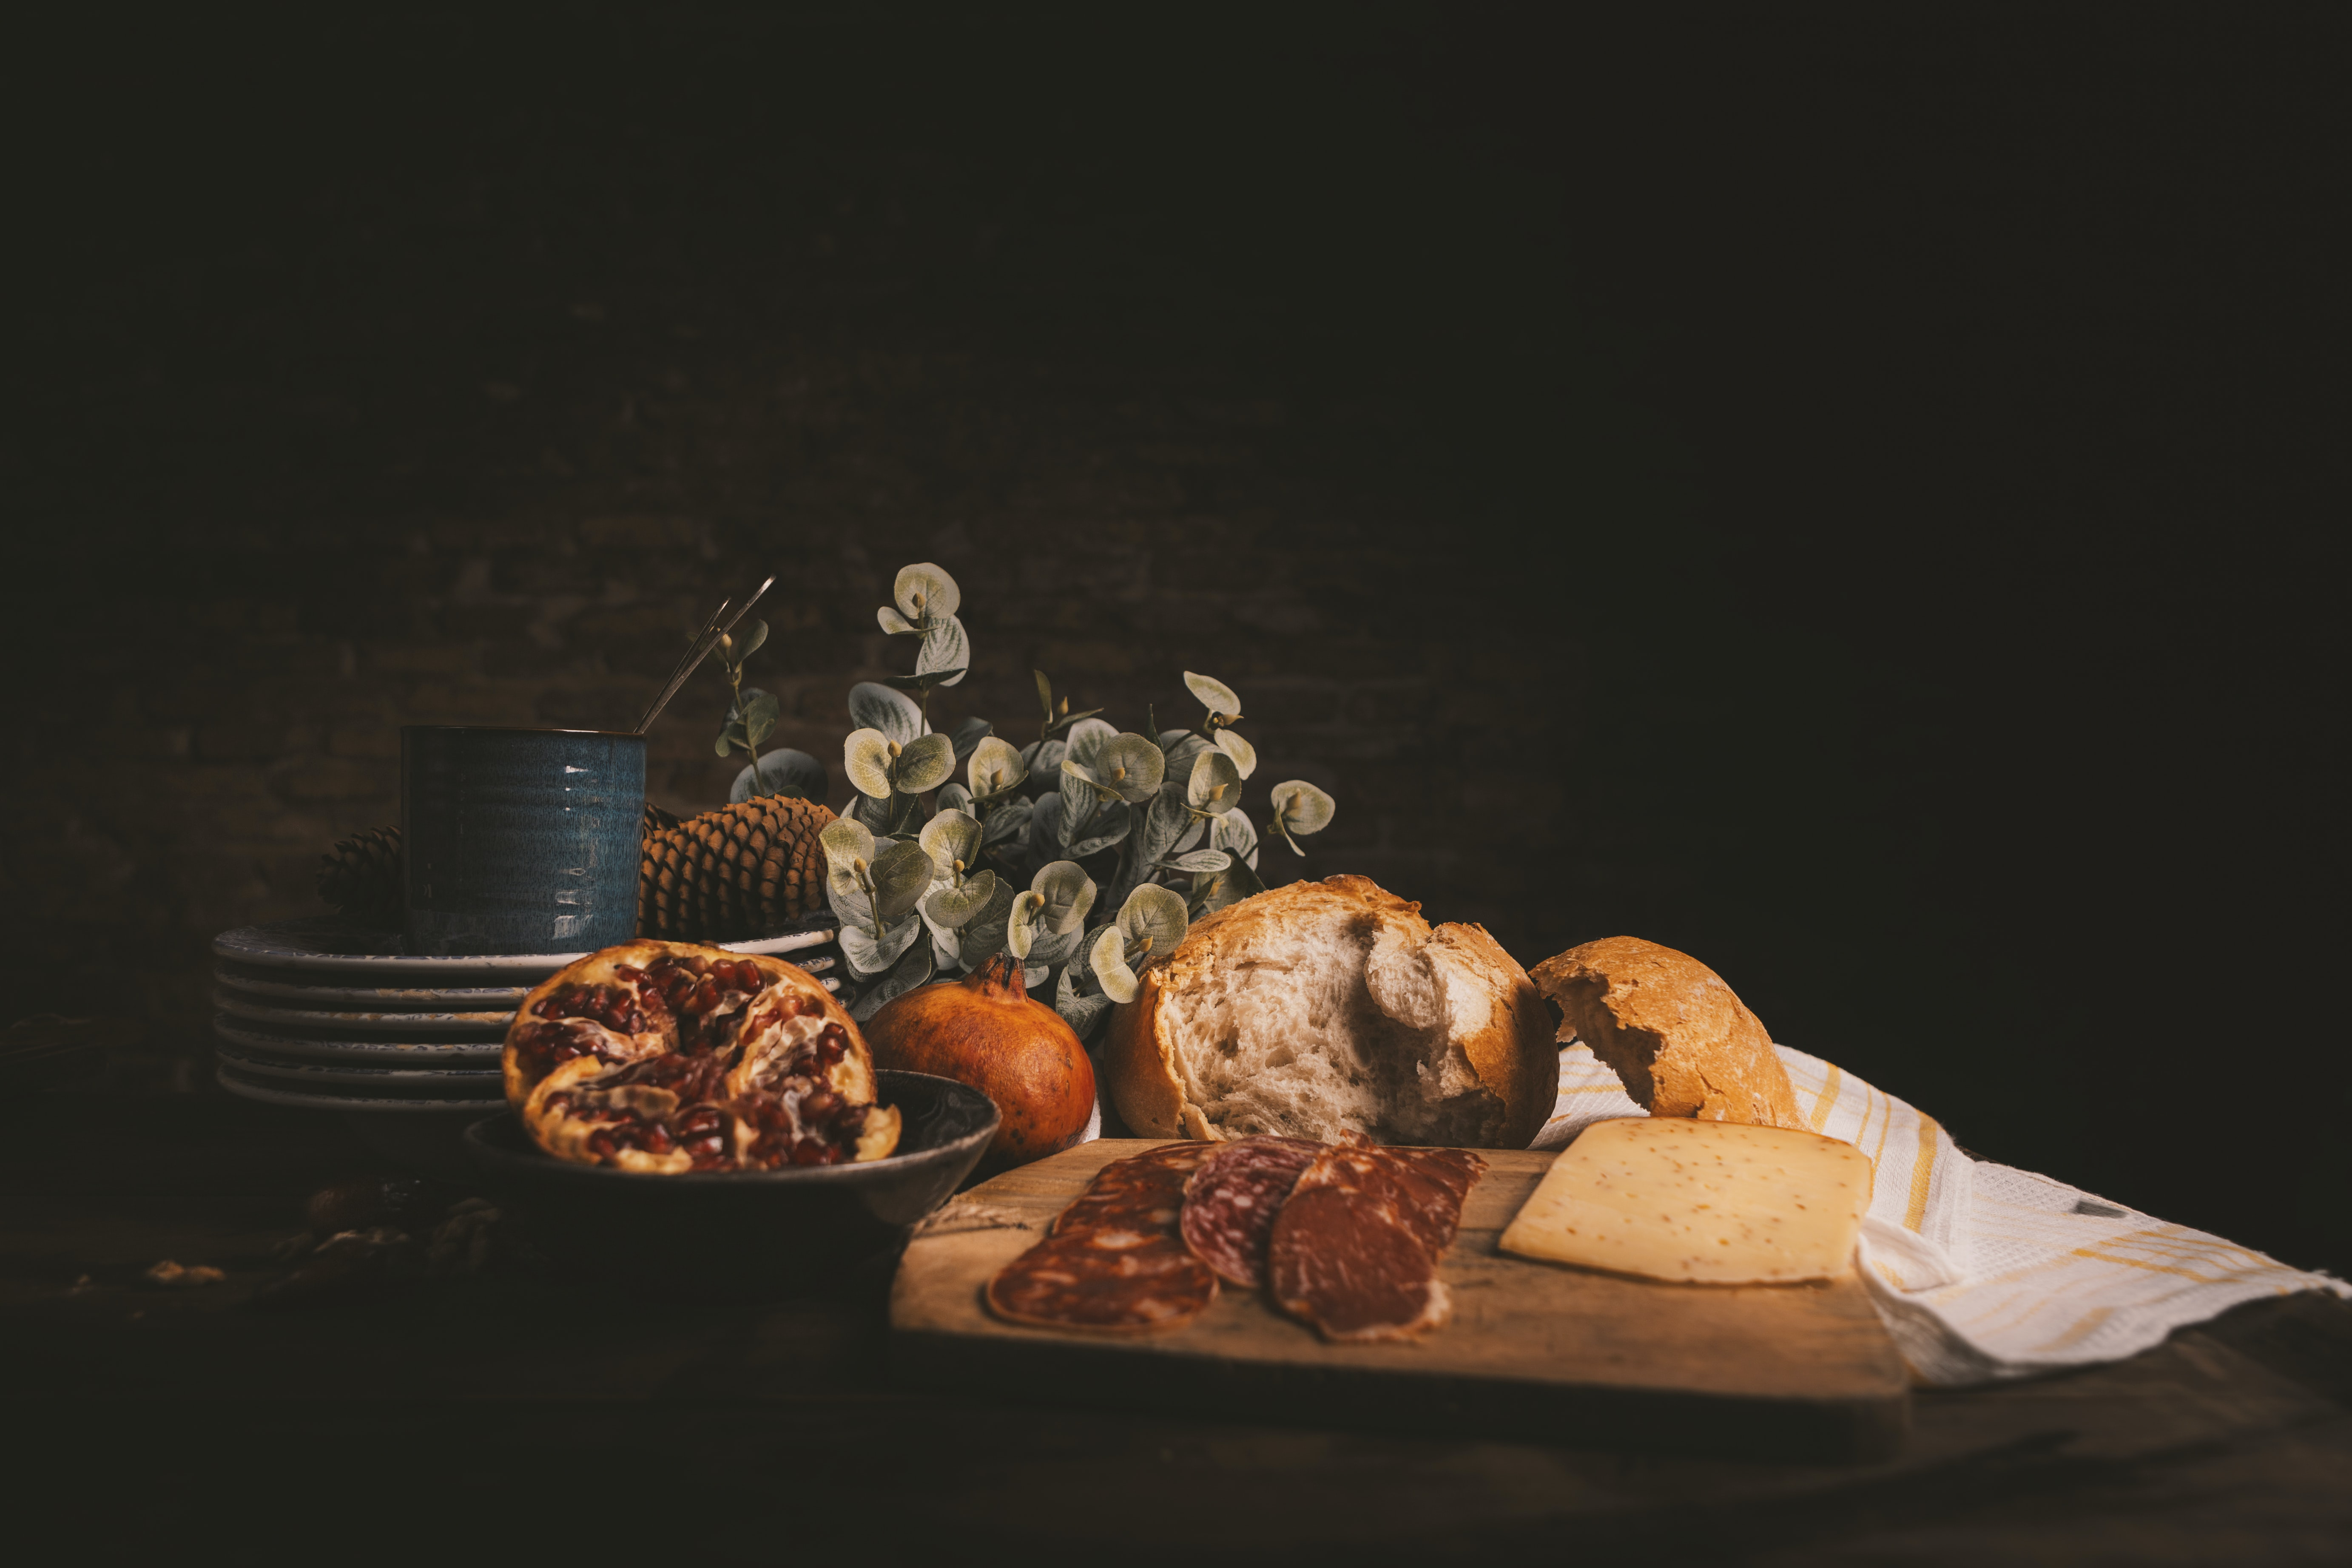 raw of meat on chopping board beside baked bread and plates on wooden table